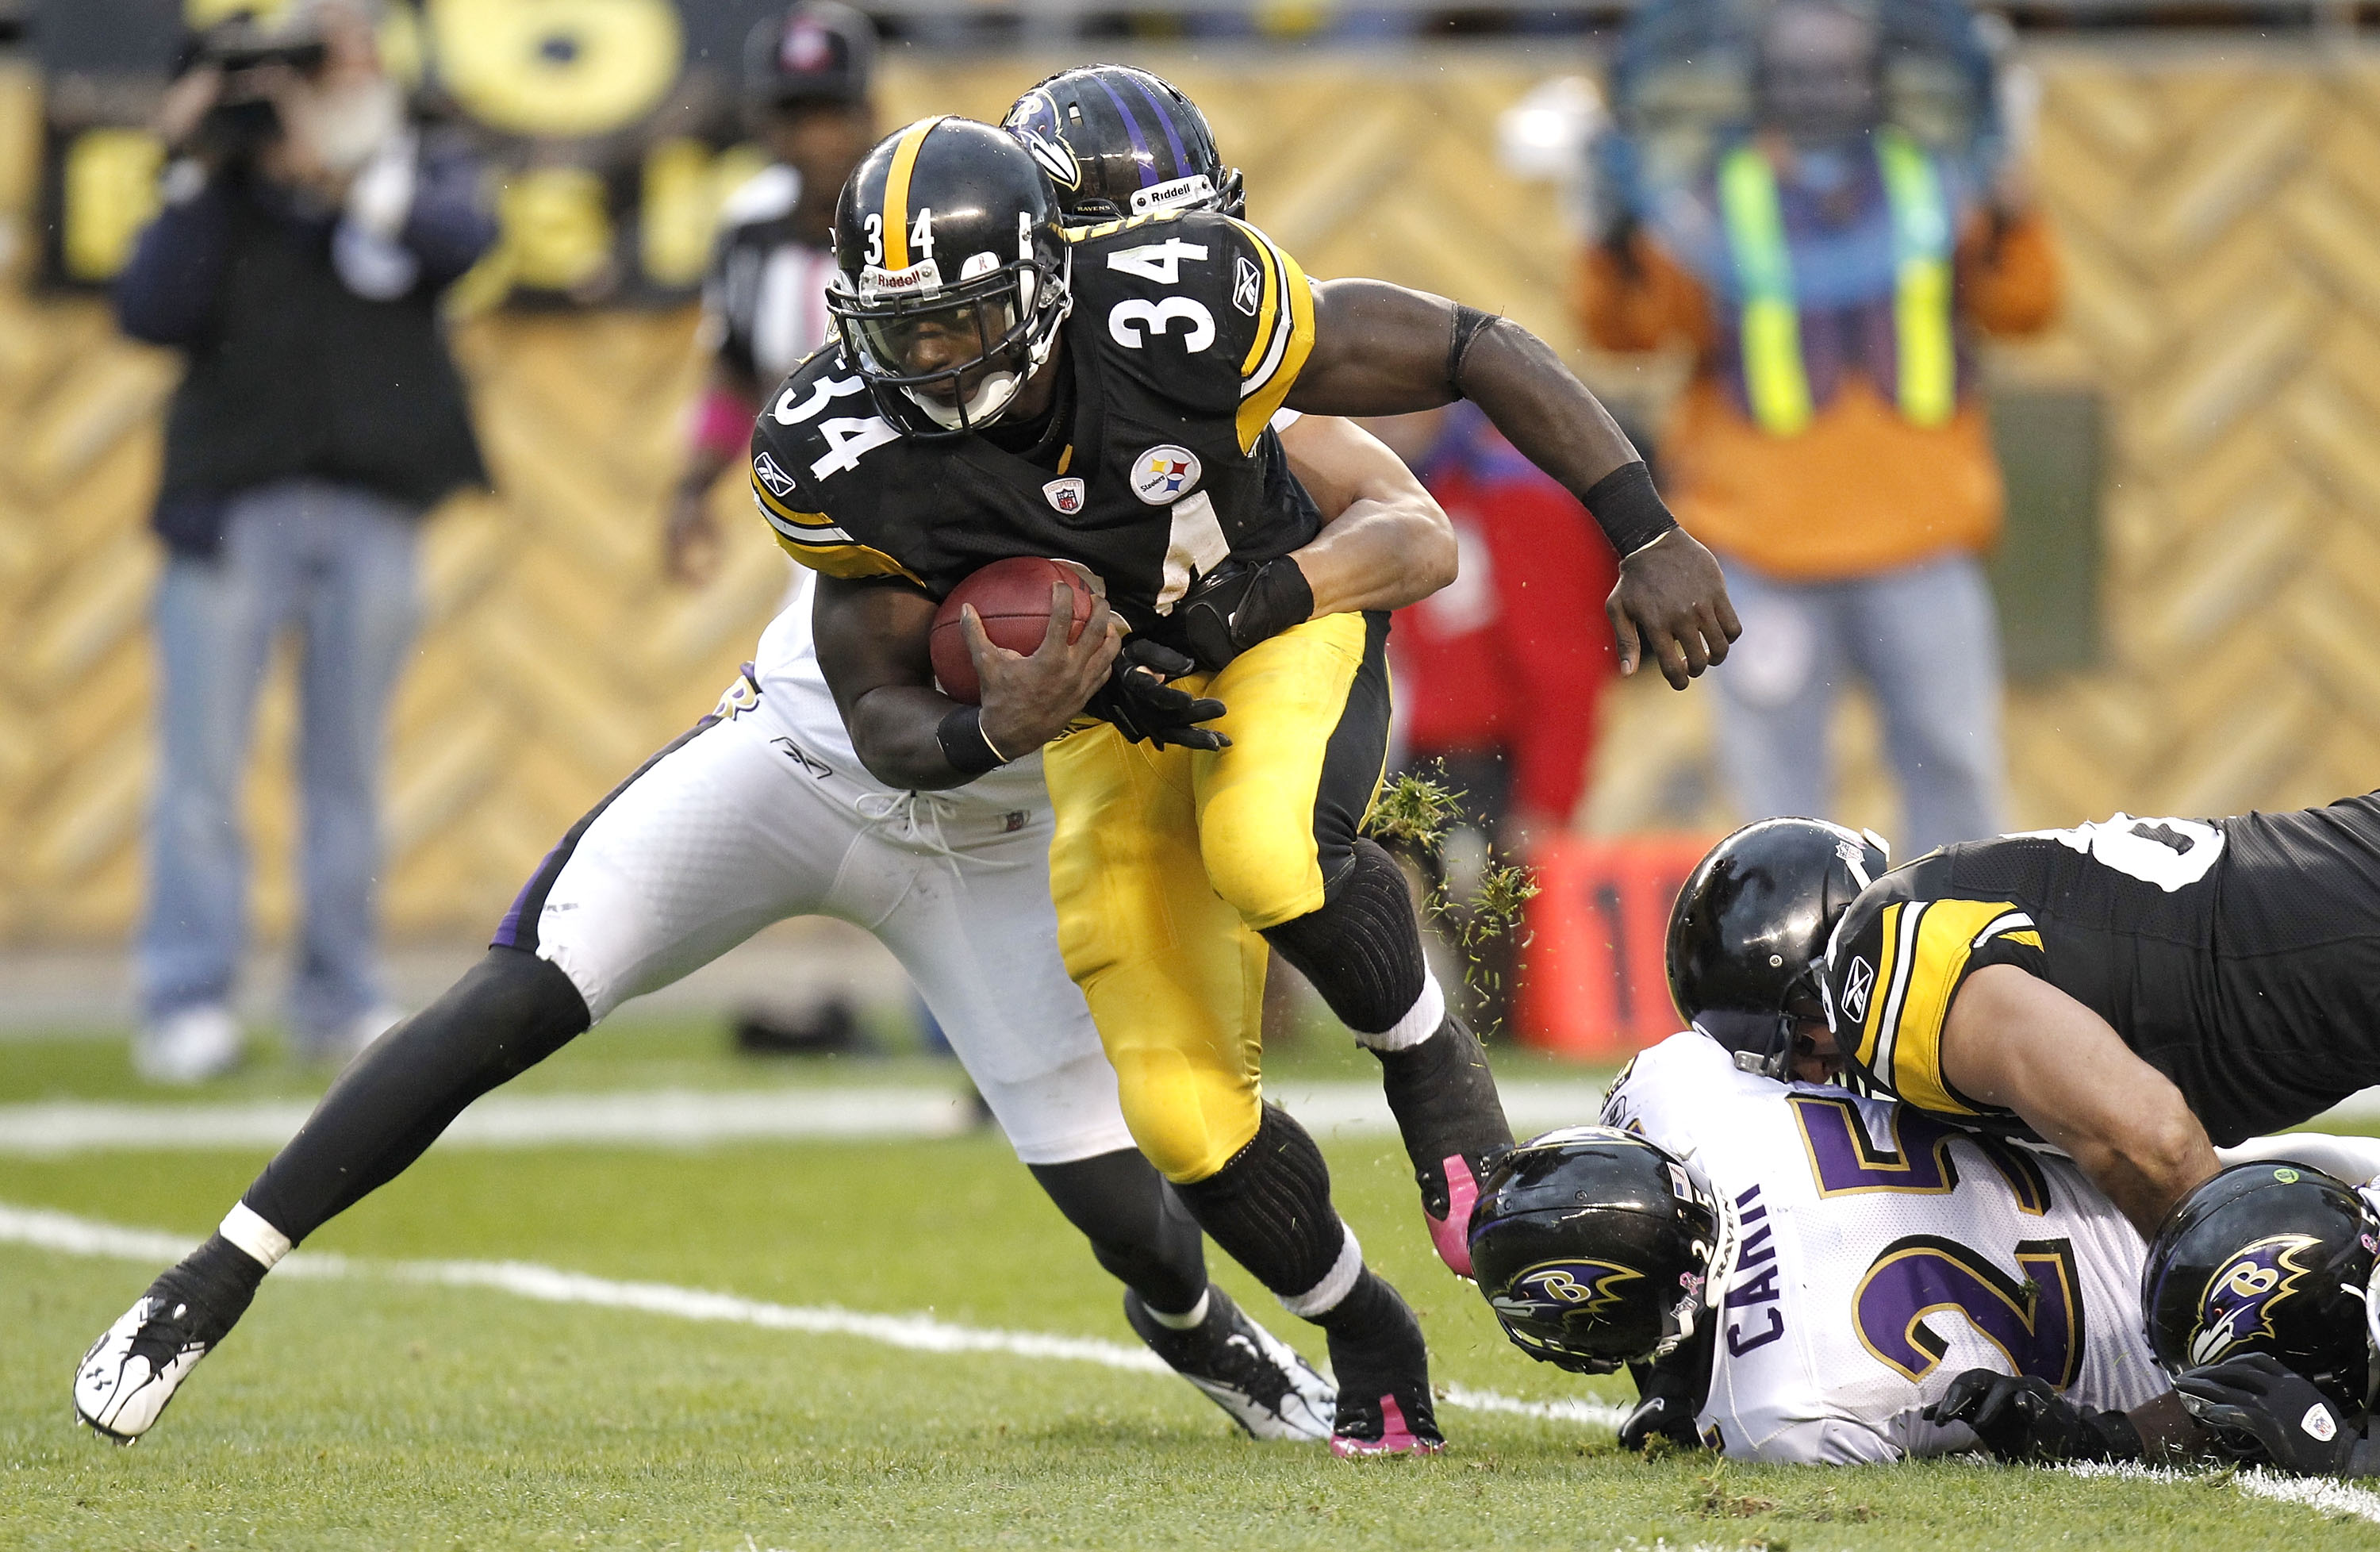 PITTSBURGH - OCTOBER 03: Rashard Mendenhall #34 of the Pittsburgh Steelers battles for extra yards while playing the Baltimore Ravens on October 3, 2010 at Heinz Field in Pittsburgh, Pennsylvania. Baltimore won the game 17-14.  (Photo by Gregory Shamus/Ge